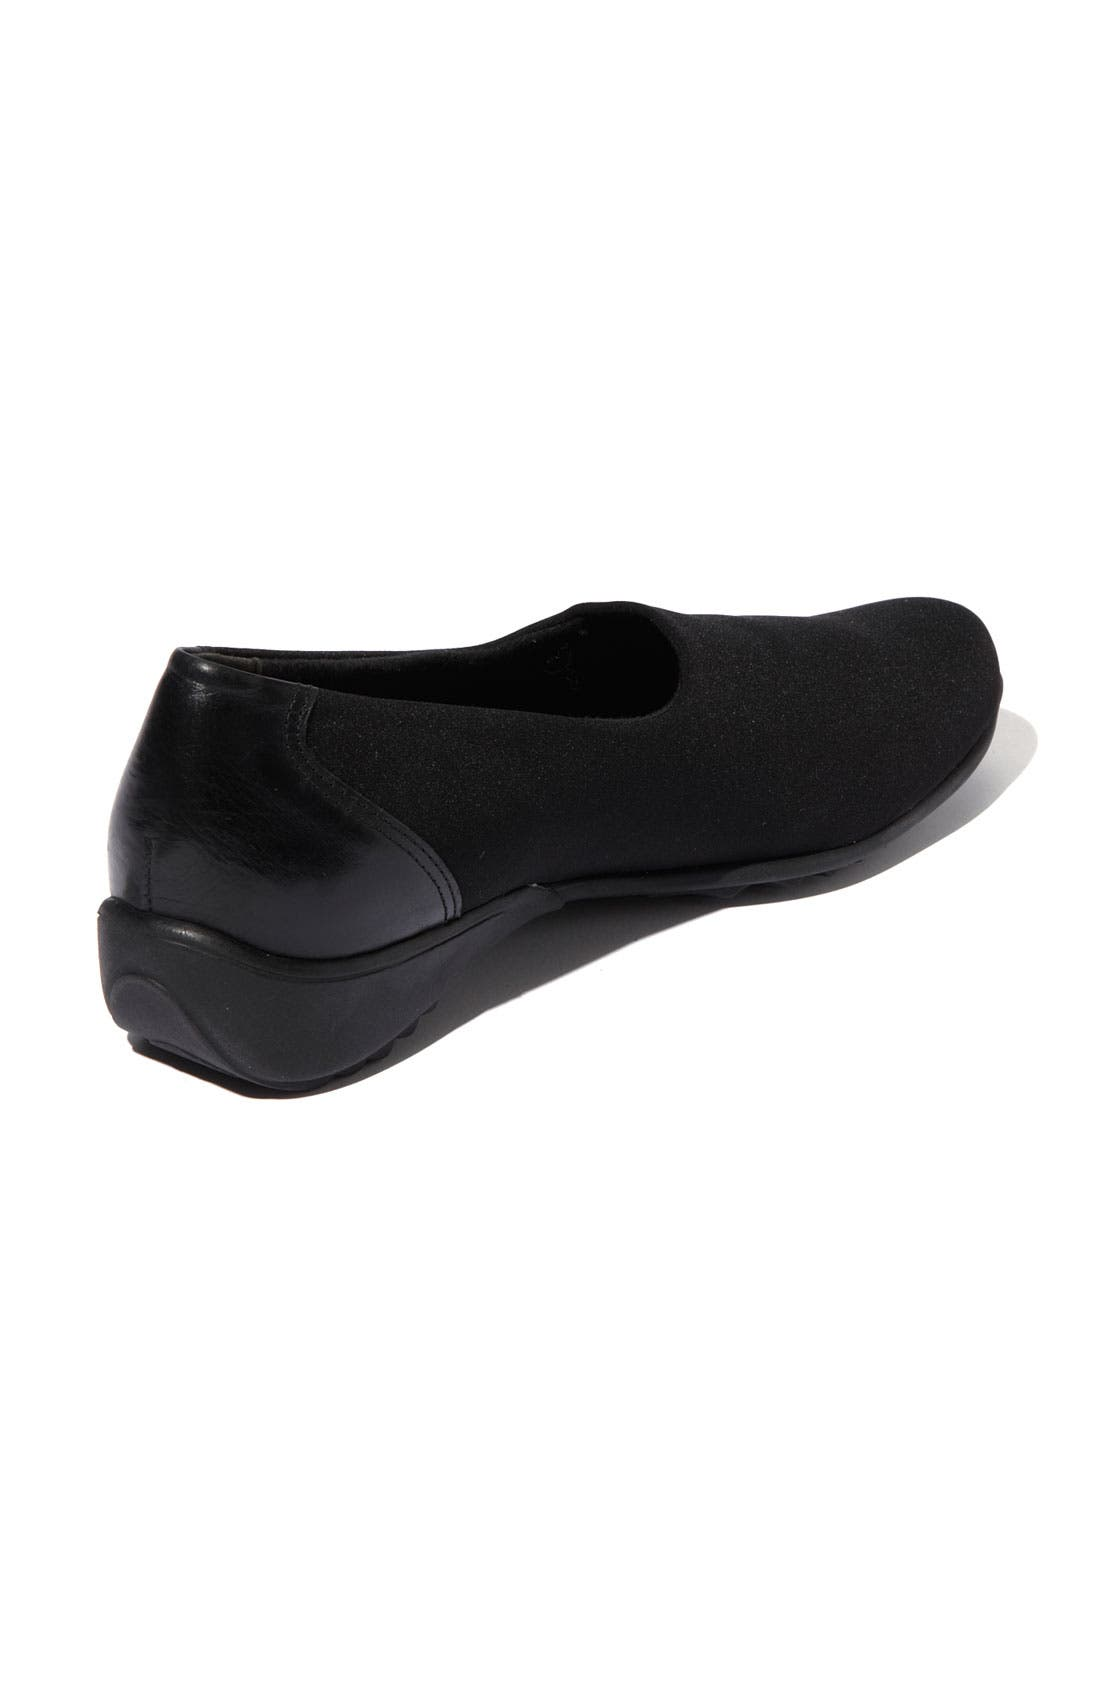 4ab7d57be2b4 Women s Orthotic Friendly Comfortable Shoes